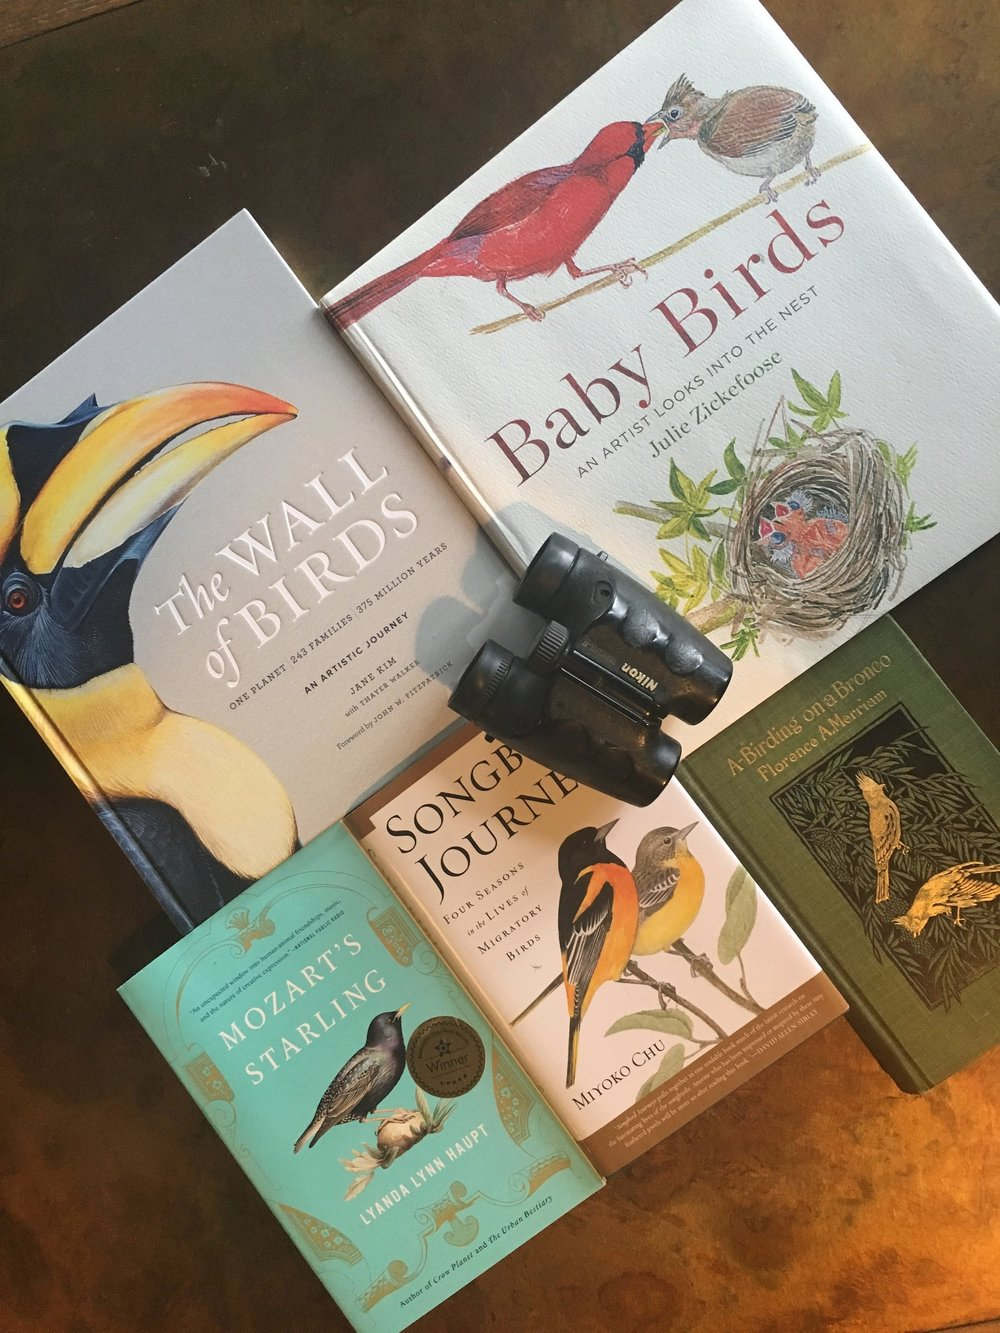 A personal selection of bird books by female authors, some read and some still waiting on my bedside table!